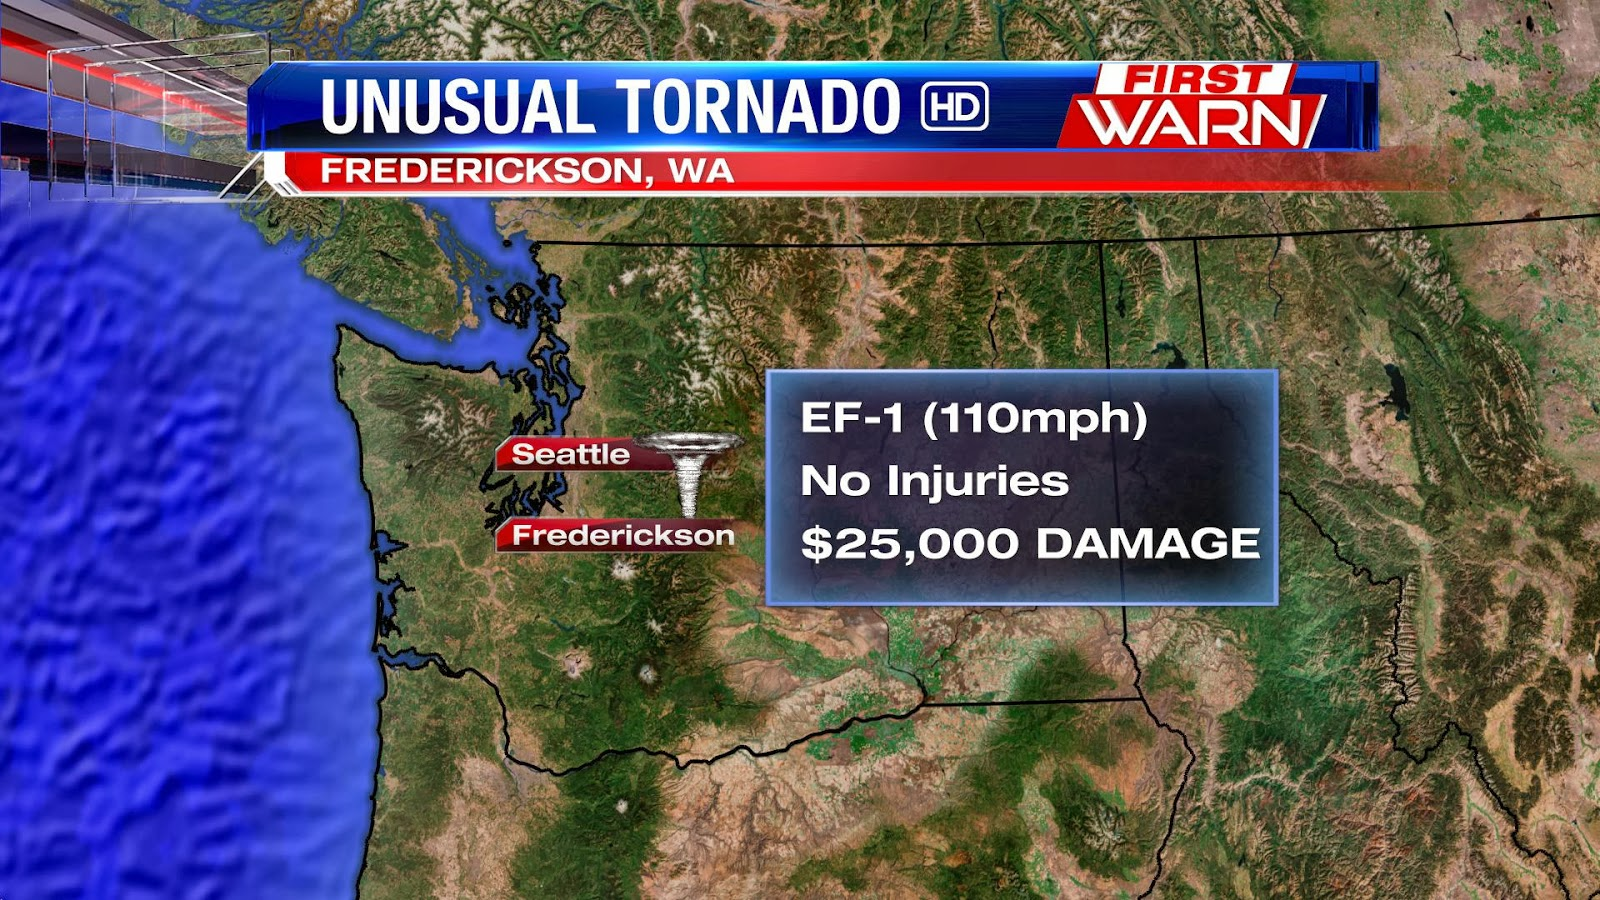 HD Decor Images » First Warn Weather Team  Unusual Tornado Hits Washington State File this under  Severe weather can strike anywhere   A tornado touched  down in Frederickson  Washington on Monday morning  While tornadoes aren t  unheard